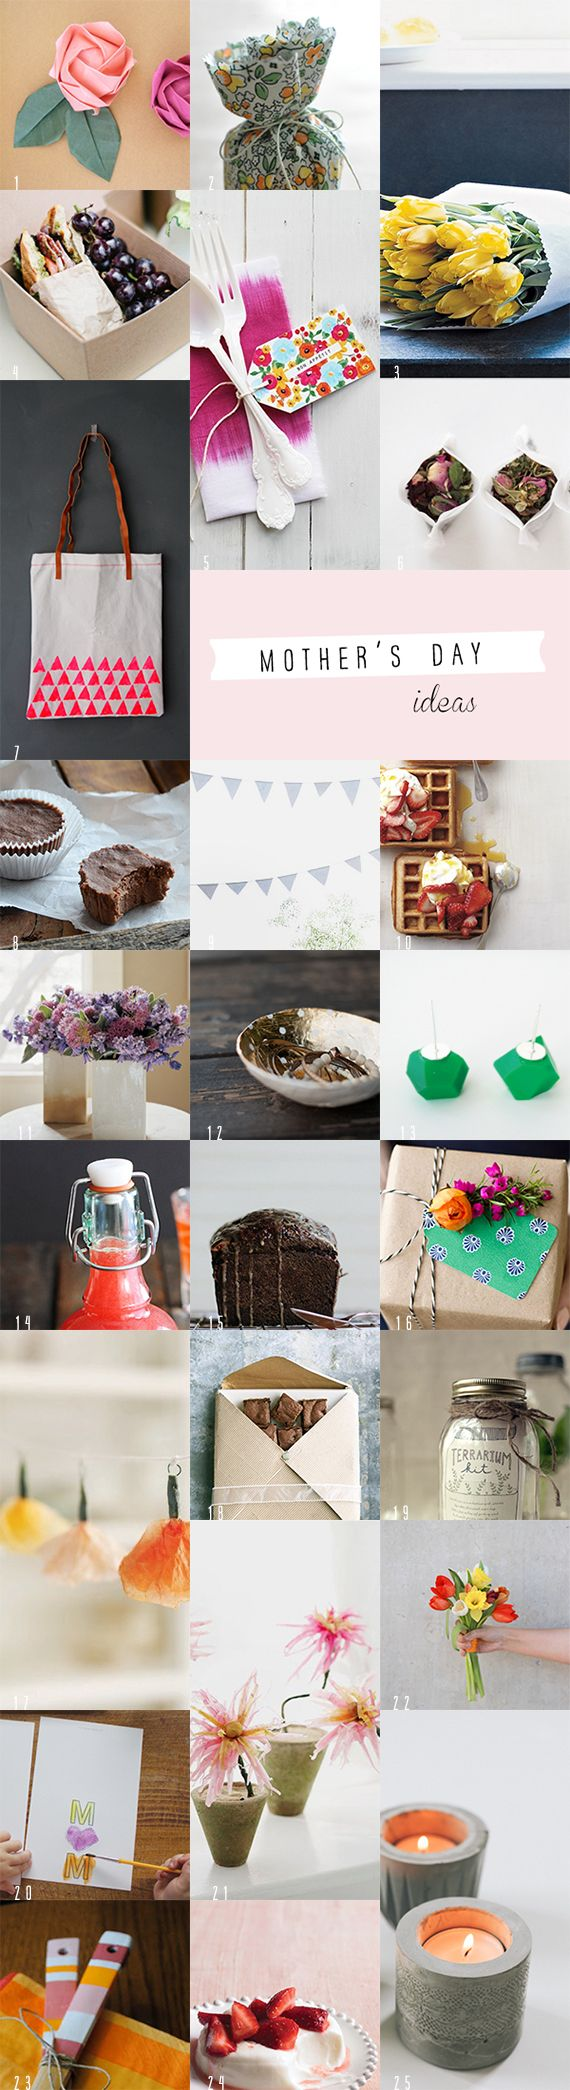 25 Homemade Mothers Day Ideas